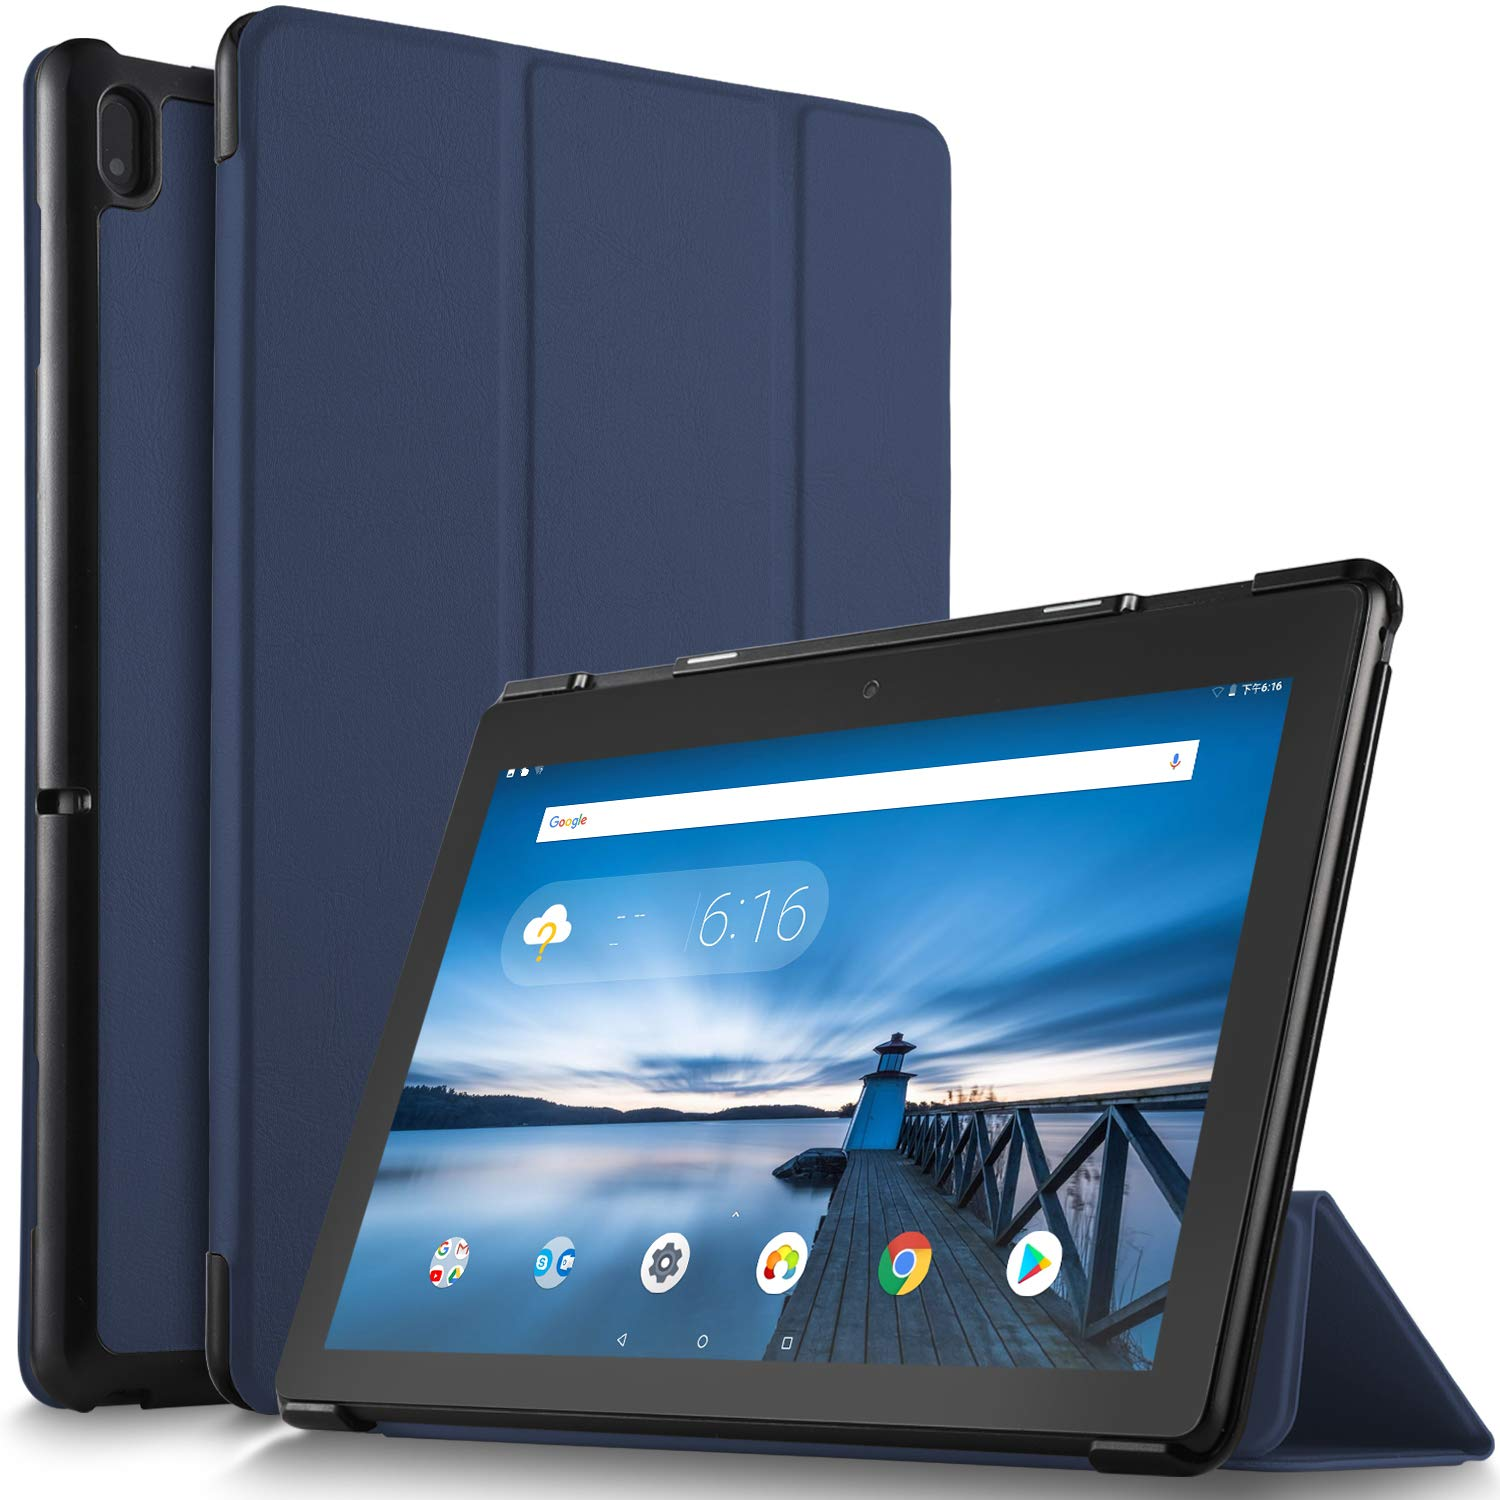 IVSO Case for Lenovo TAB E10, Ultra Lightweight Protective Slim Smart Protective Cover Case Compatible with Lenovo TAB E10 2018 Released Tablet (Blue)